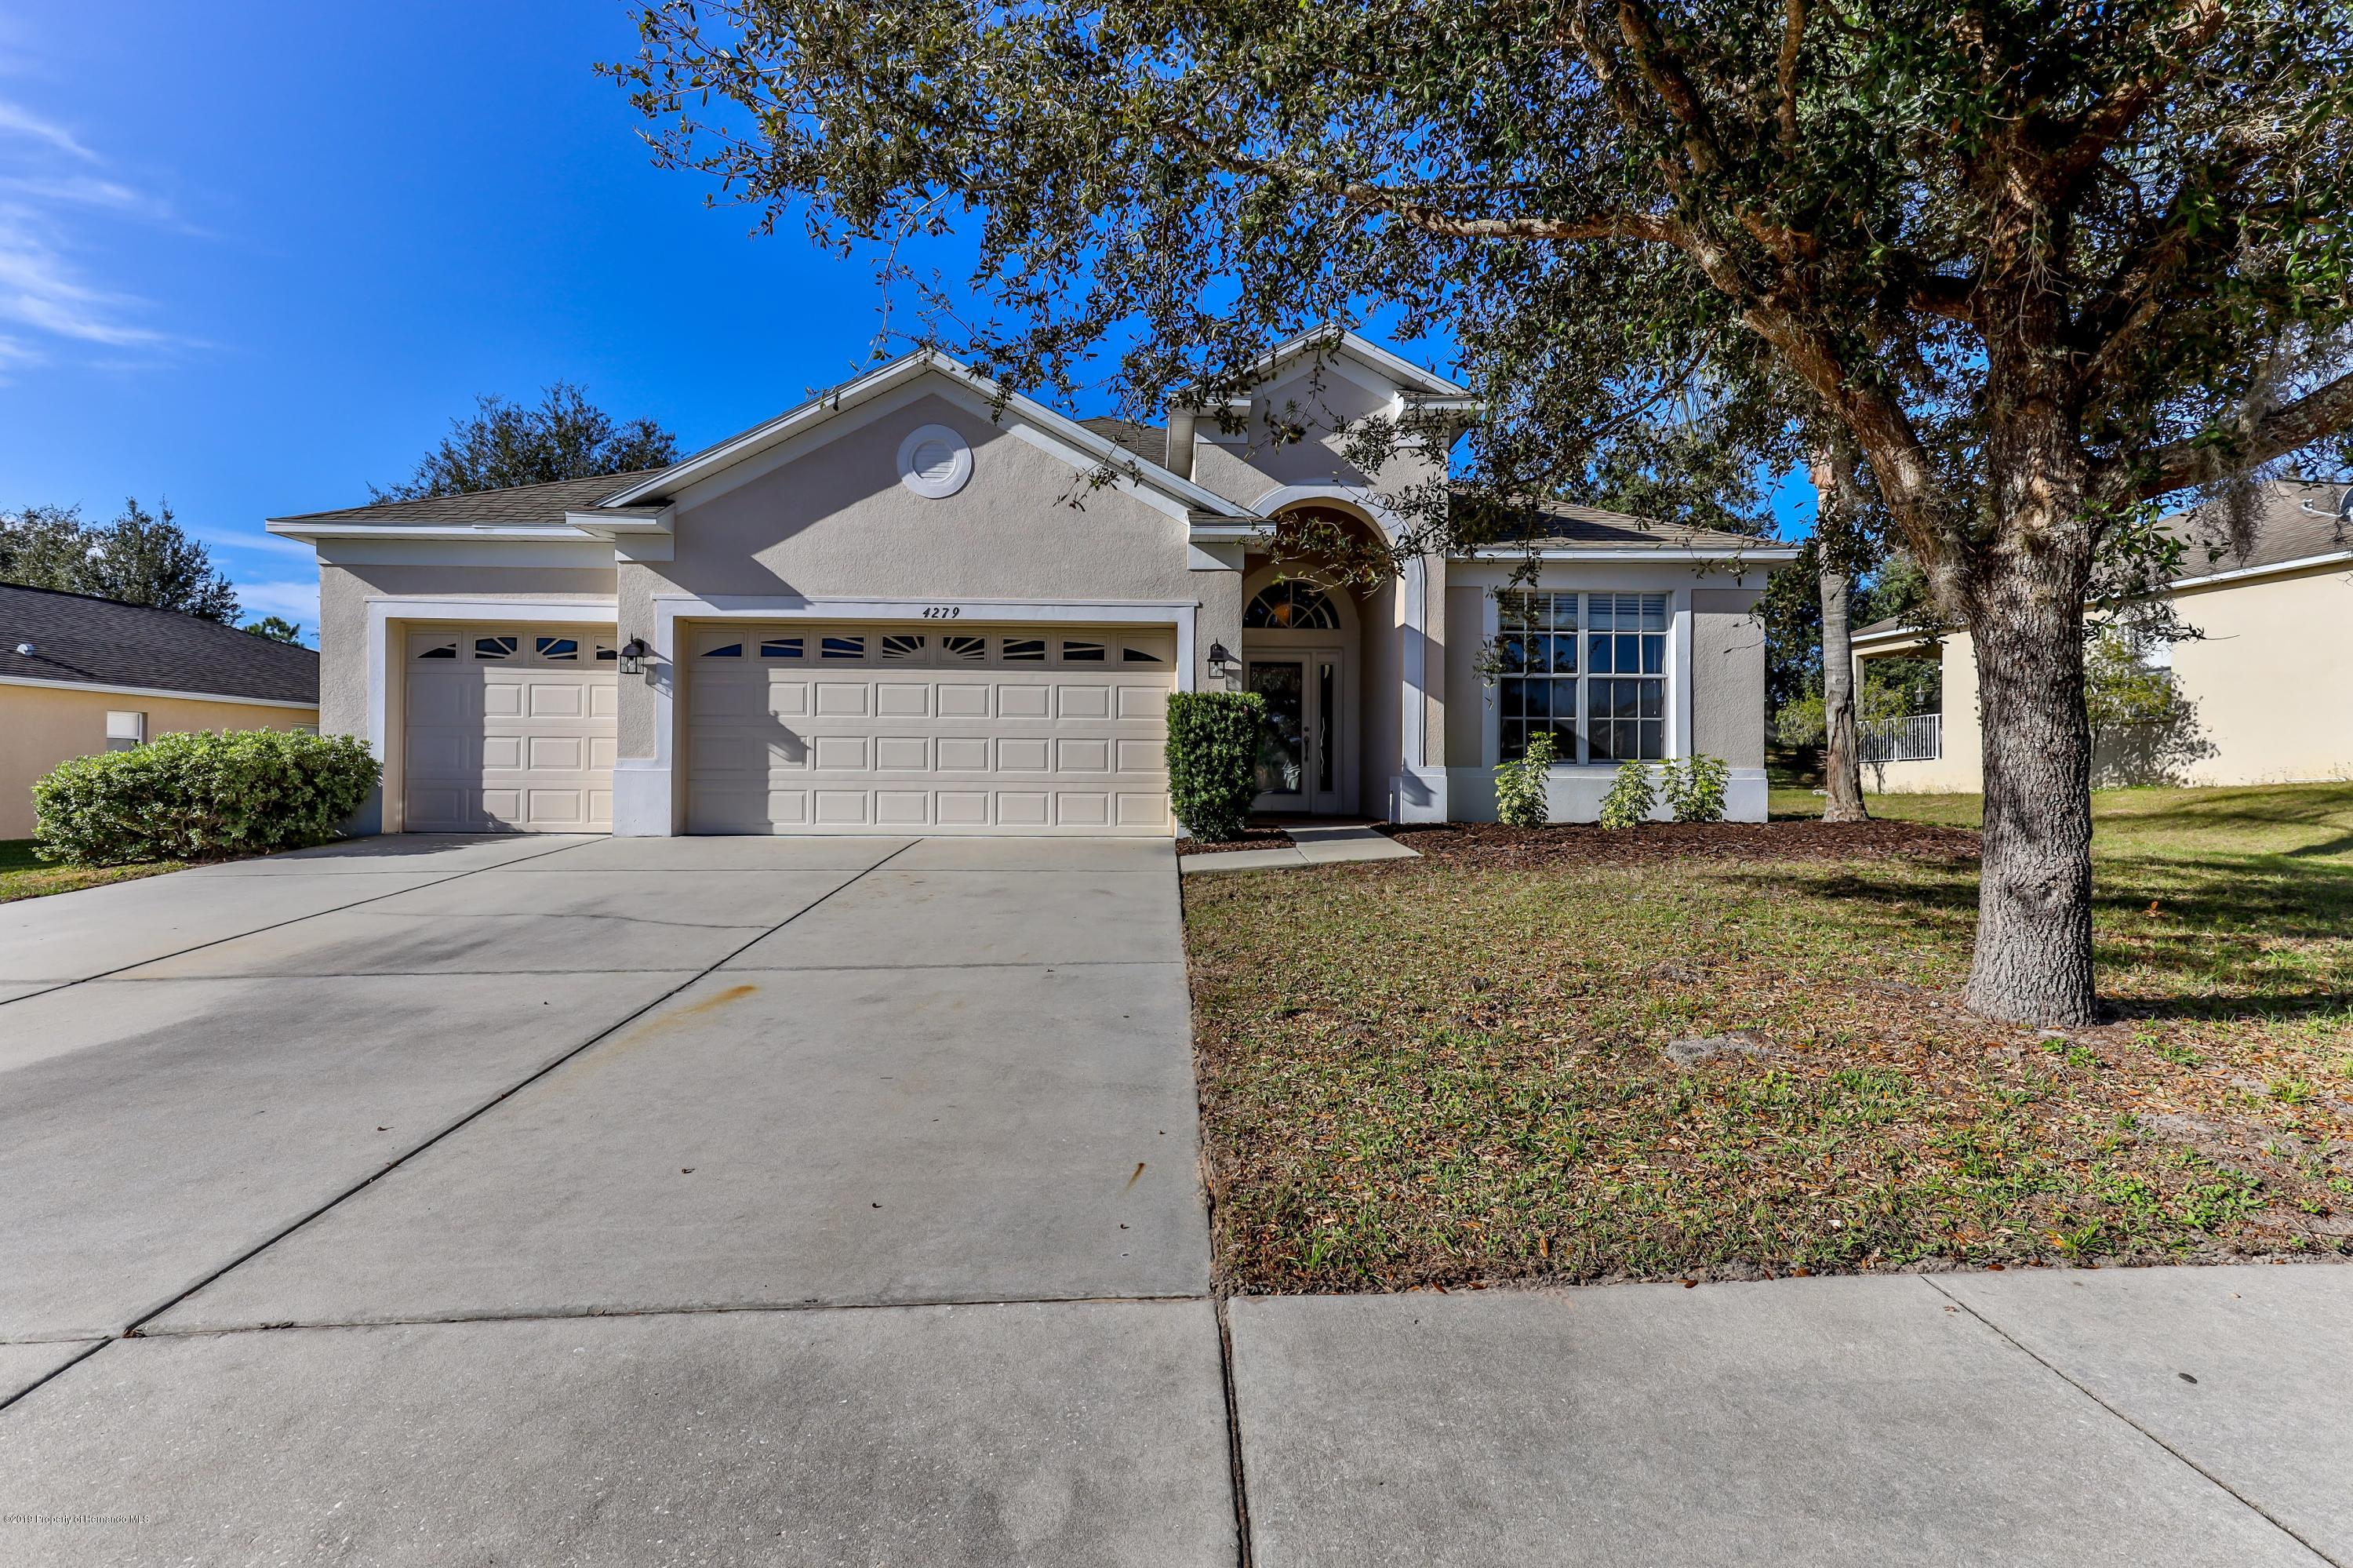 4279 Blakemore Place